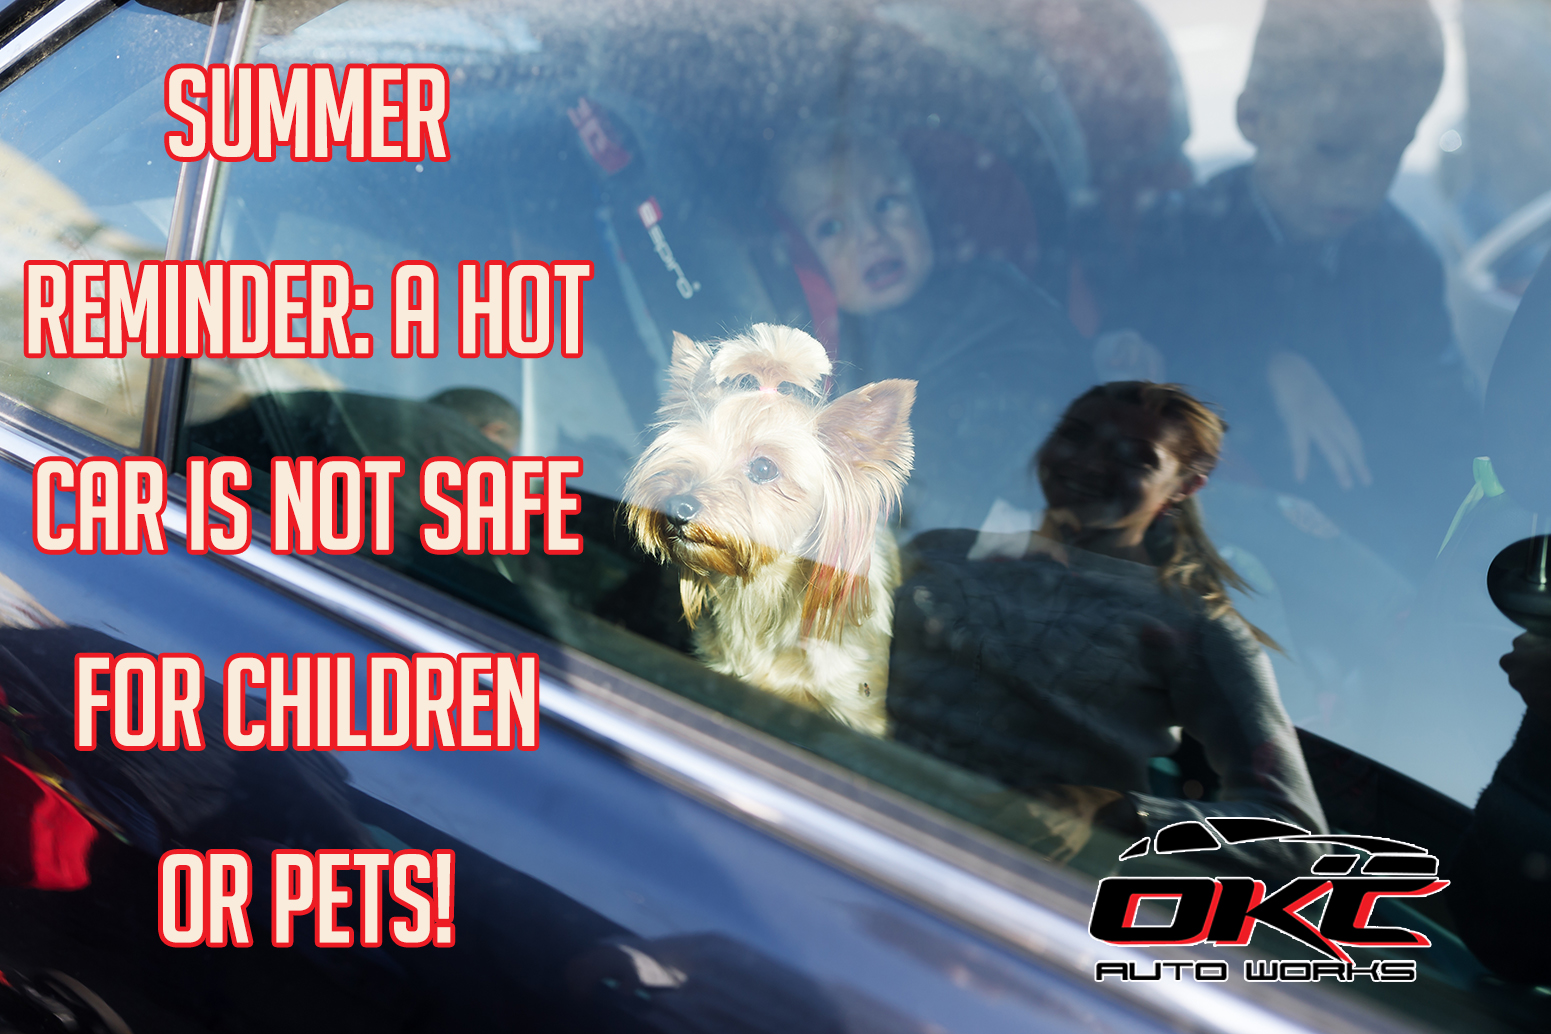 hot cars and children or pets do not mix